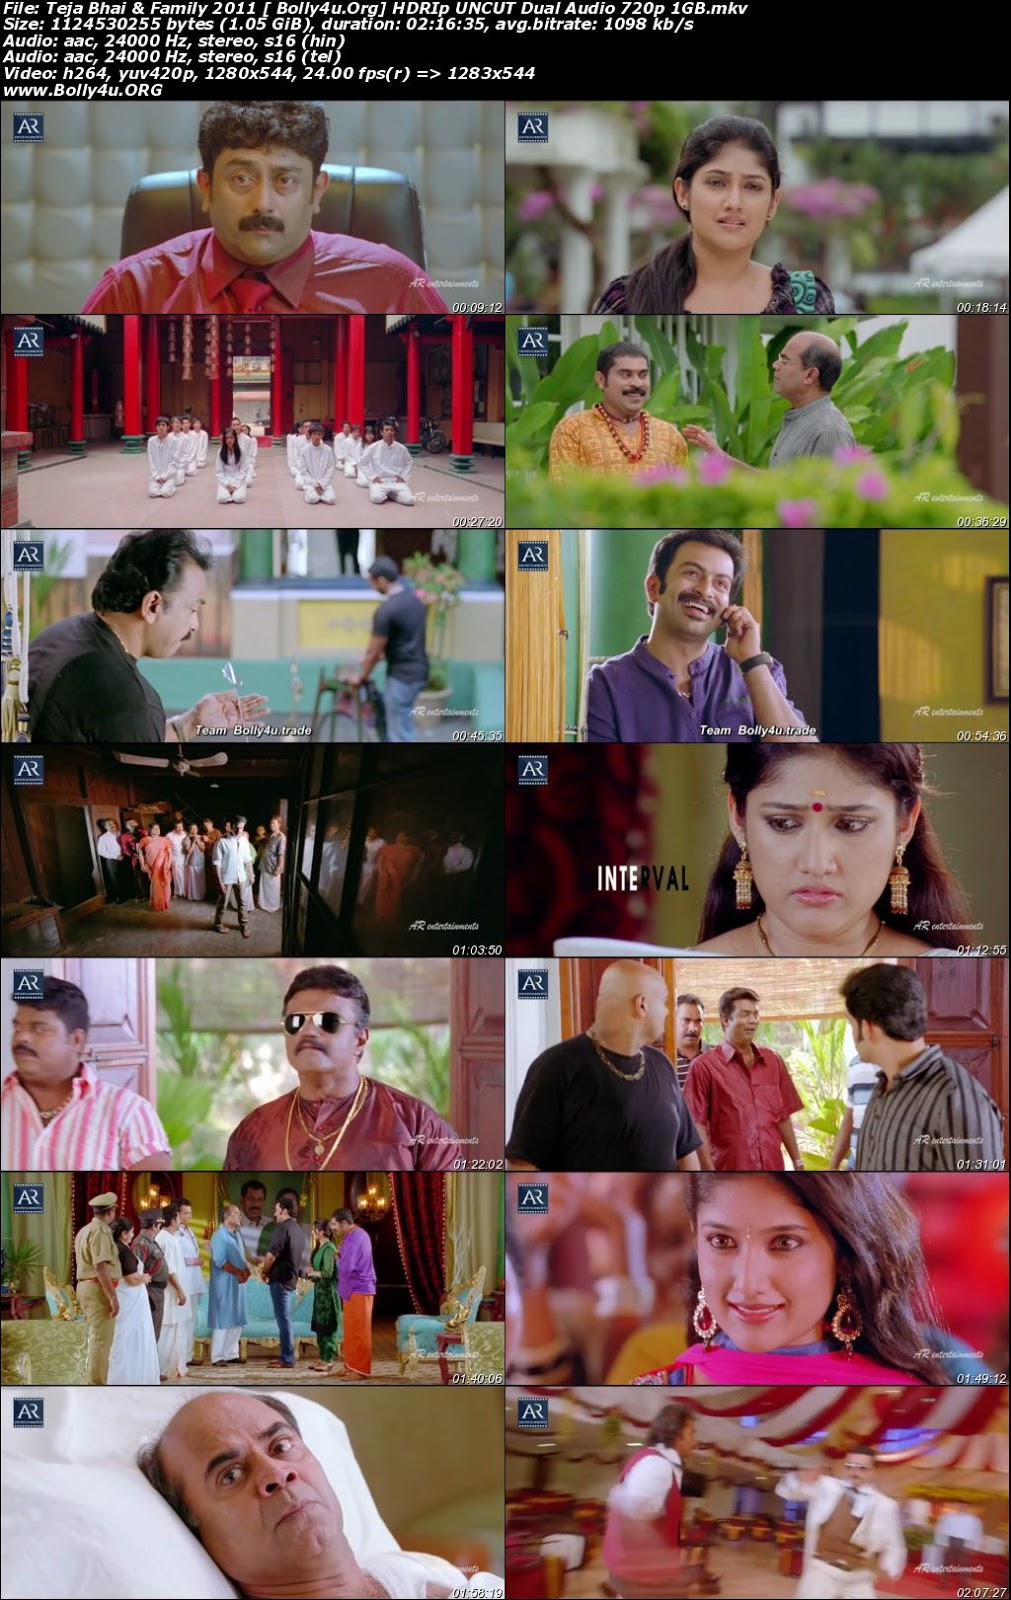 Teja Bhai and Family 2011 HDRip 1Gb UNCUT Hindi Dual Audio 720p Download